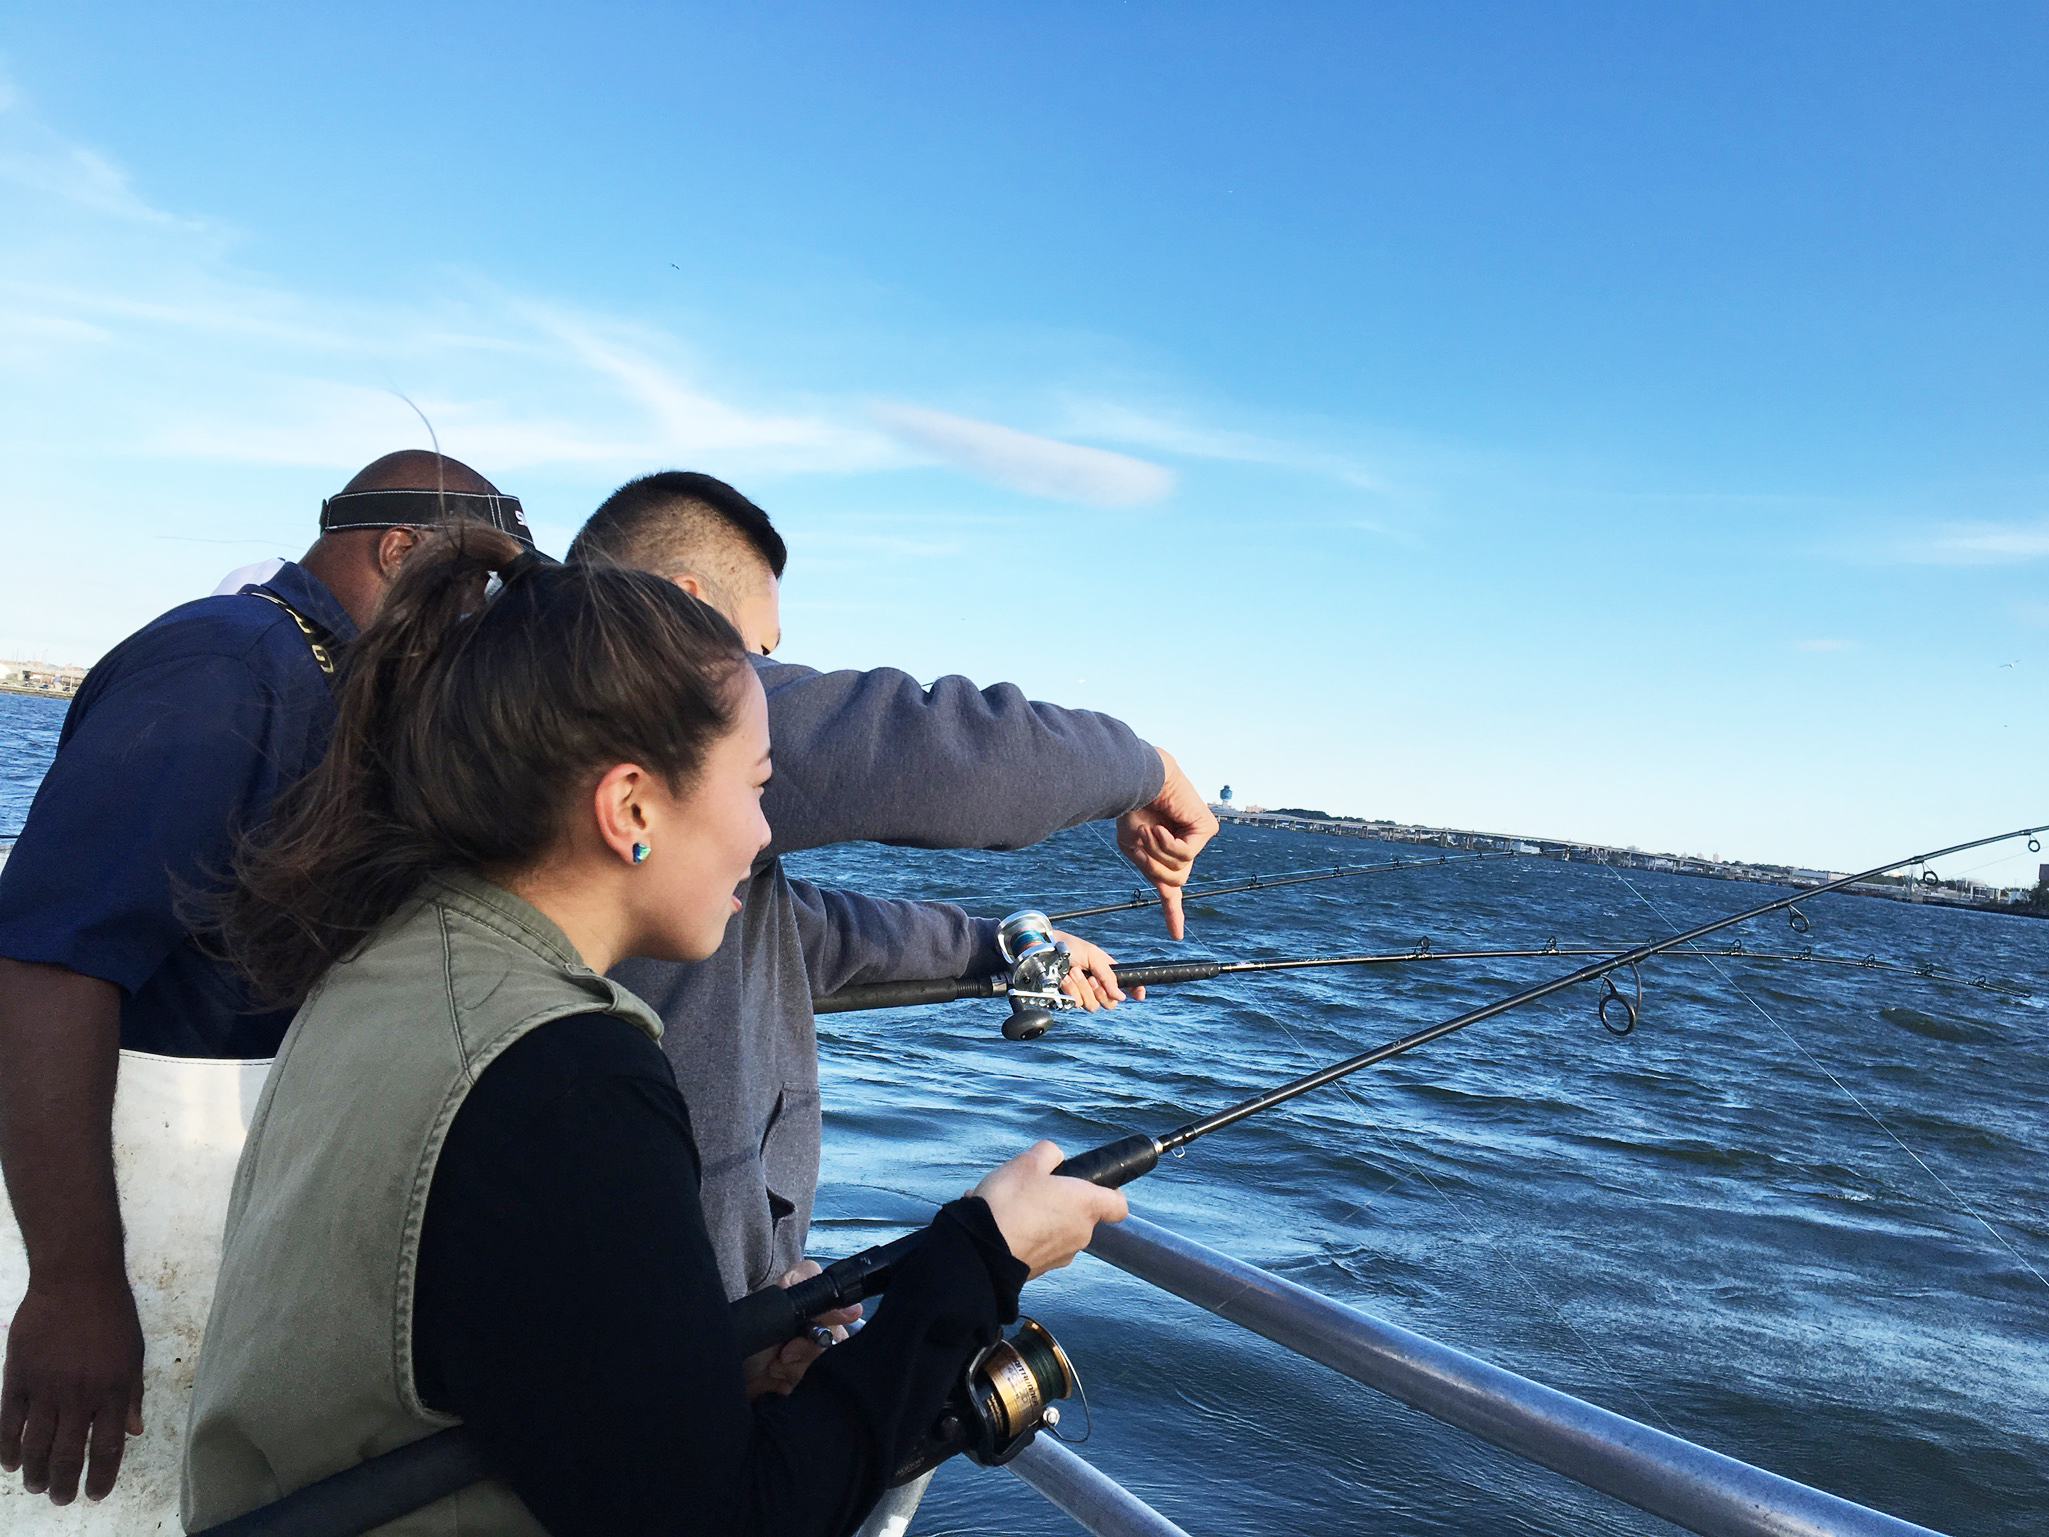 Learn how to tie knots, bait a hook, cast a rod, and maybe even reel up a fish! Guided by a marine biologist and expert anglers, learn the basics of rod and reel line fishing, while catching-and-releasing some of Brooklyn Bridge Park's aquatic organisms.